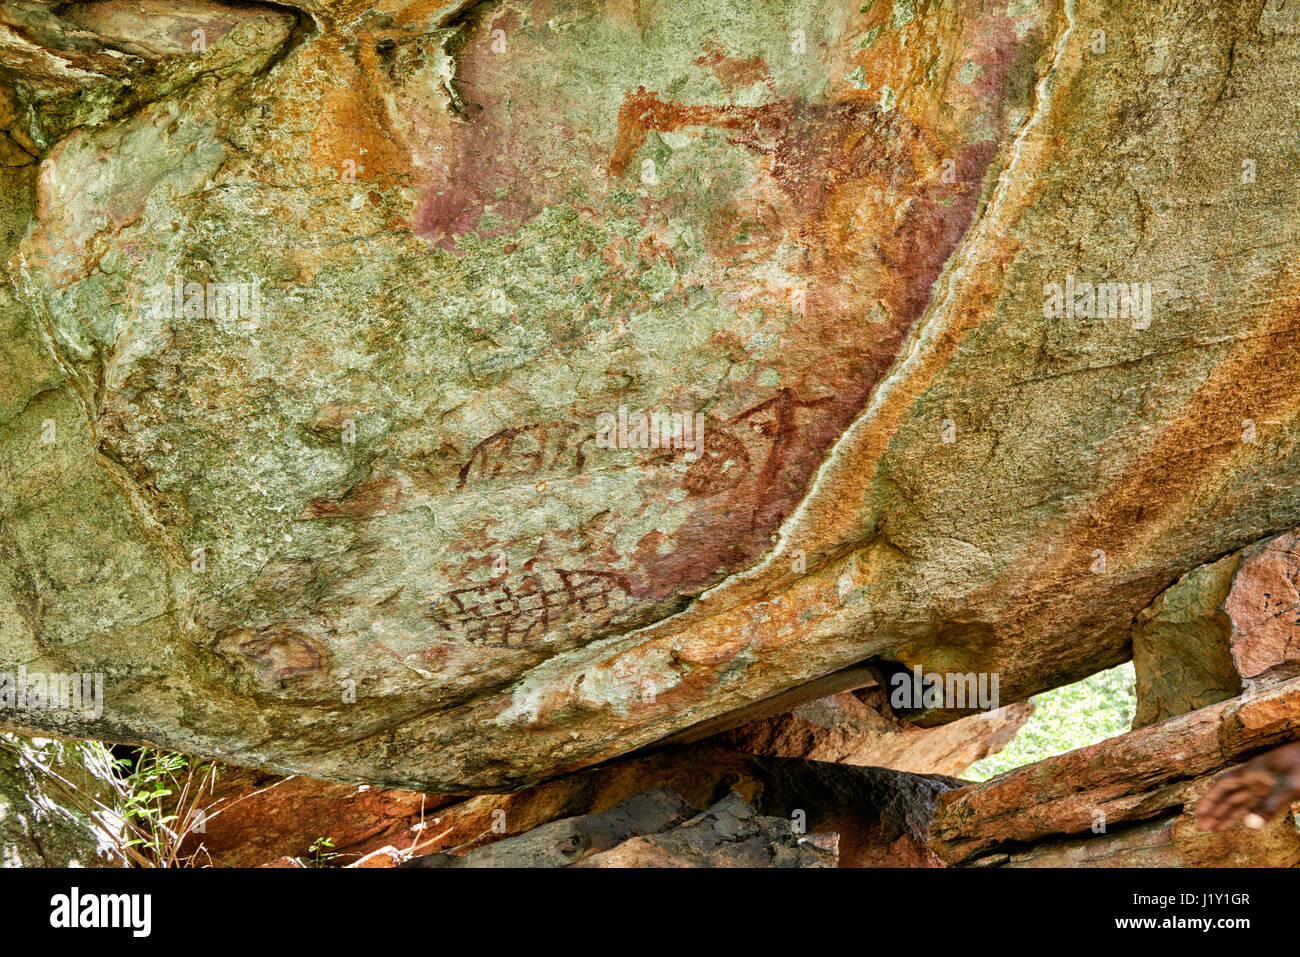 Rock art, ancient San paintings, Tsodilo Hills, Botswana, Africa - Stock Image